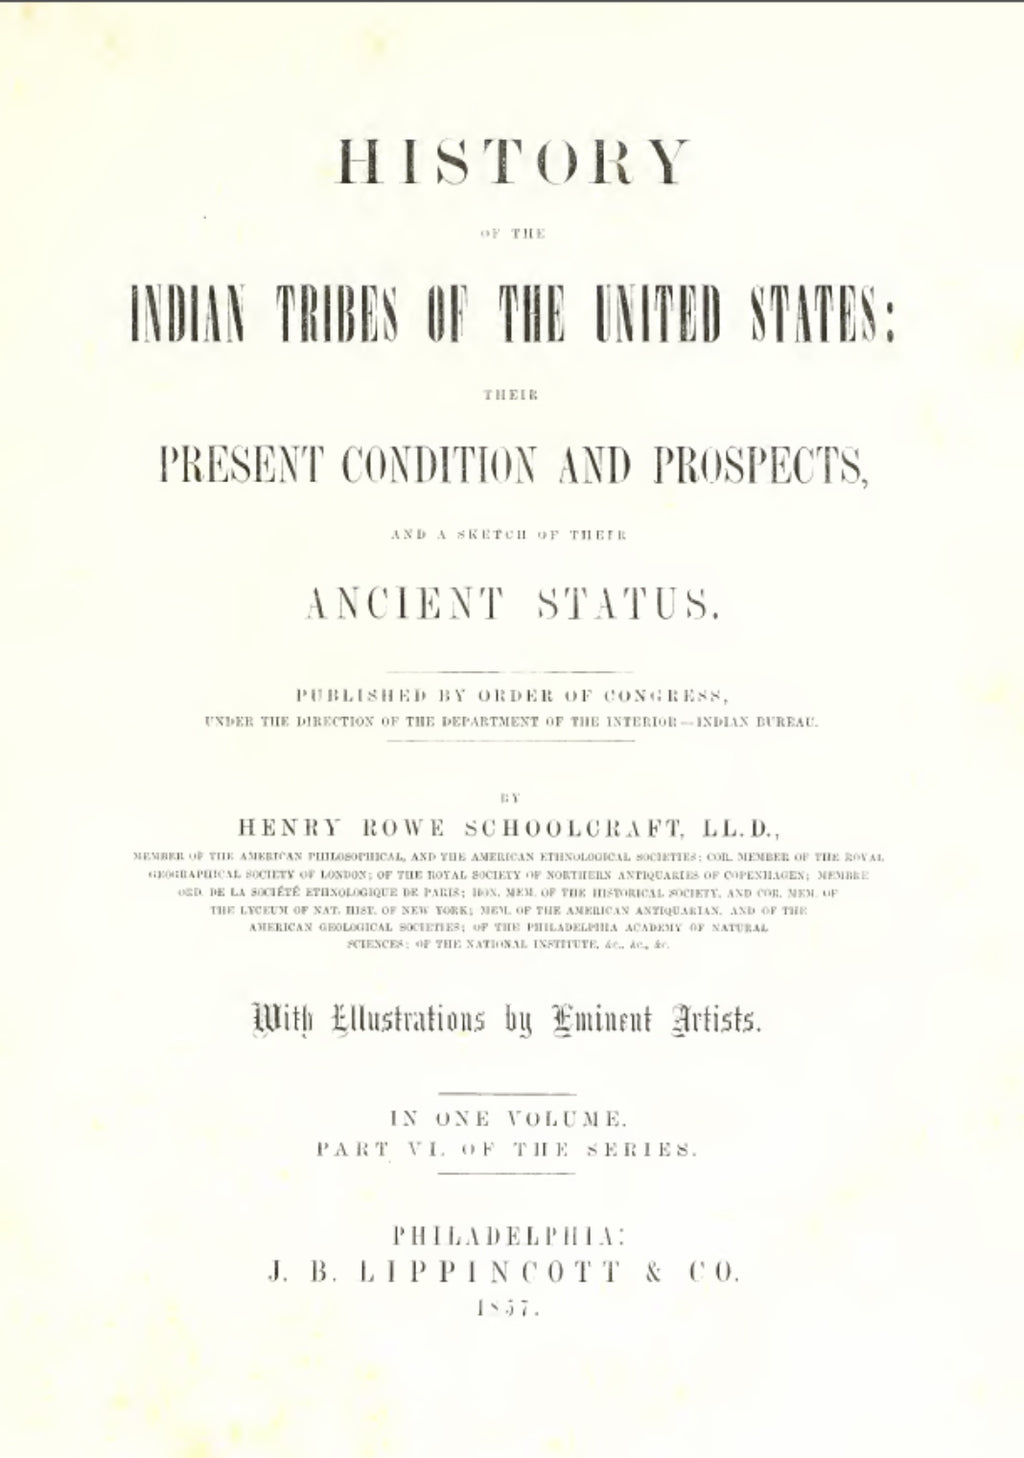 1860 Archives of aboriginal knowledge Vol 6